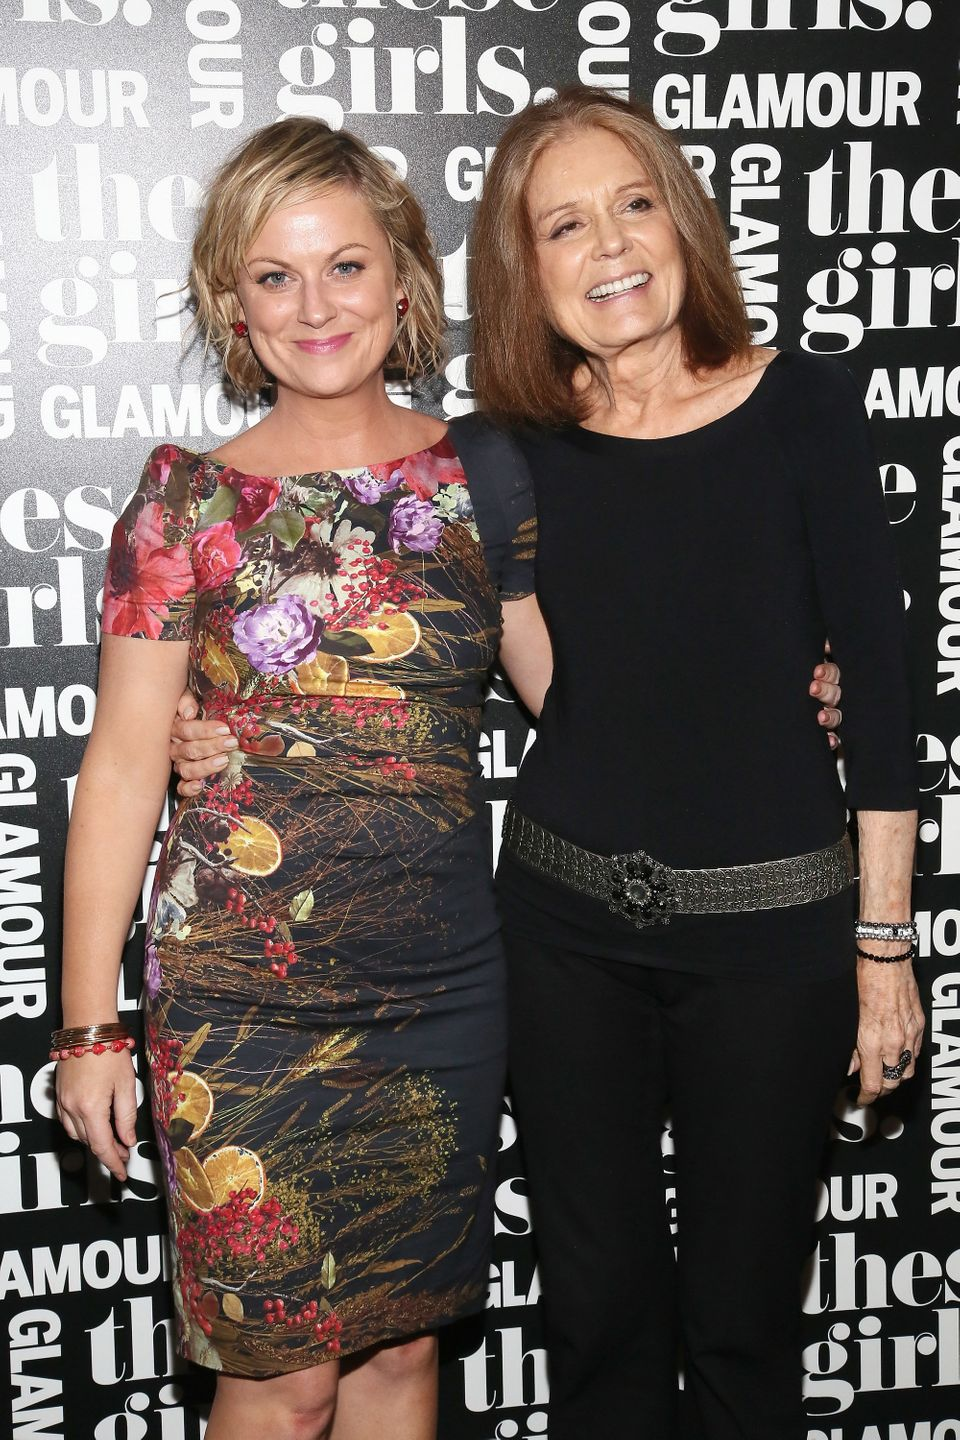 NEW YORK, NY - MAY 20:  Actress and comedian Amy Poehler (L) and journalist Gloria Steinem attend Glamour's presentation of '